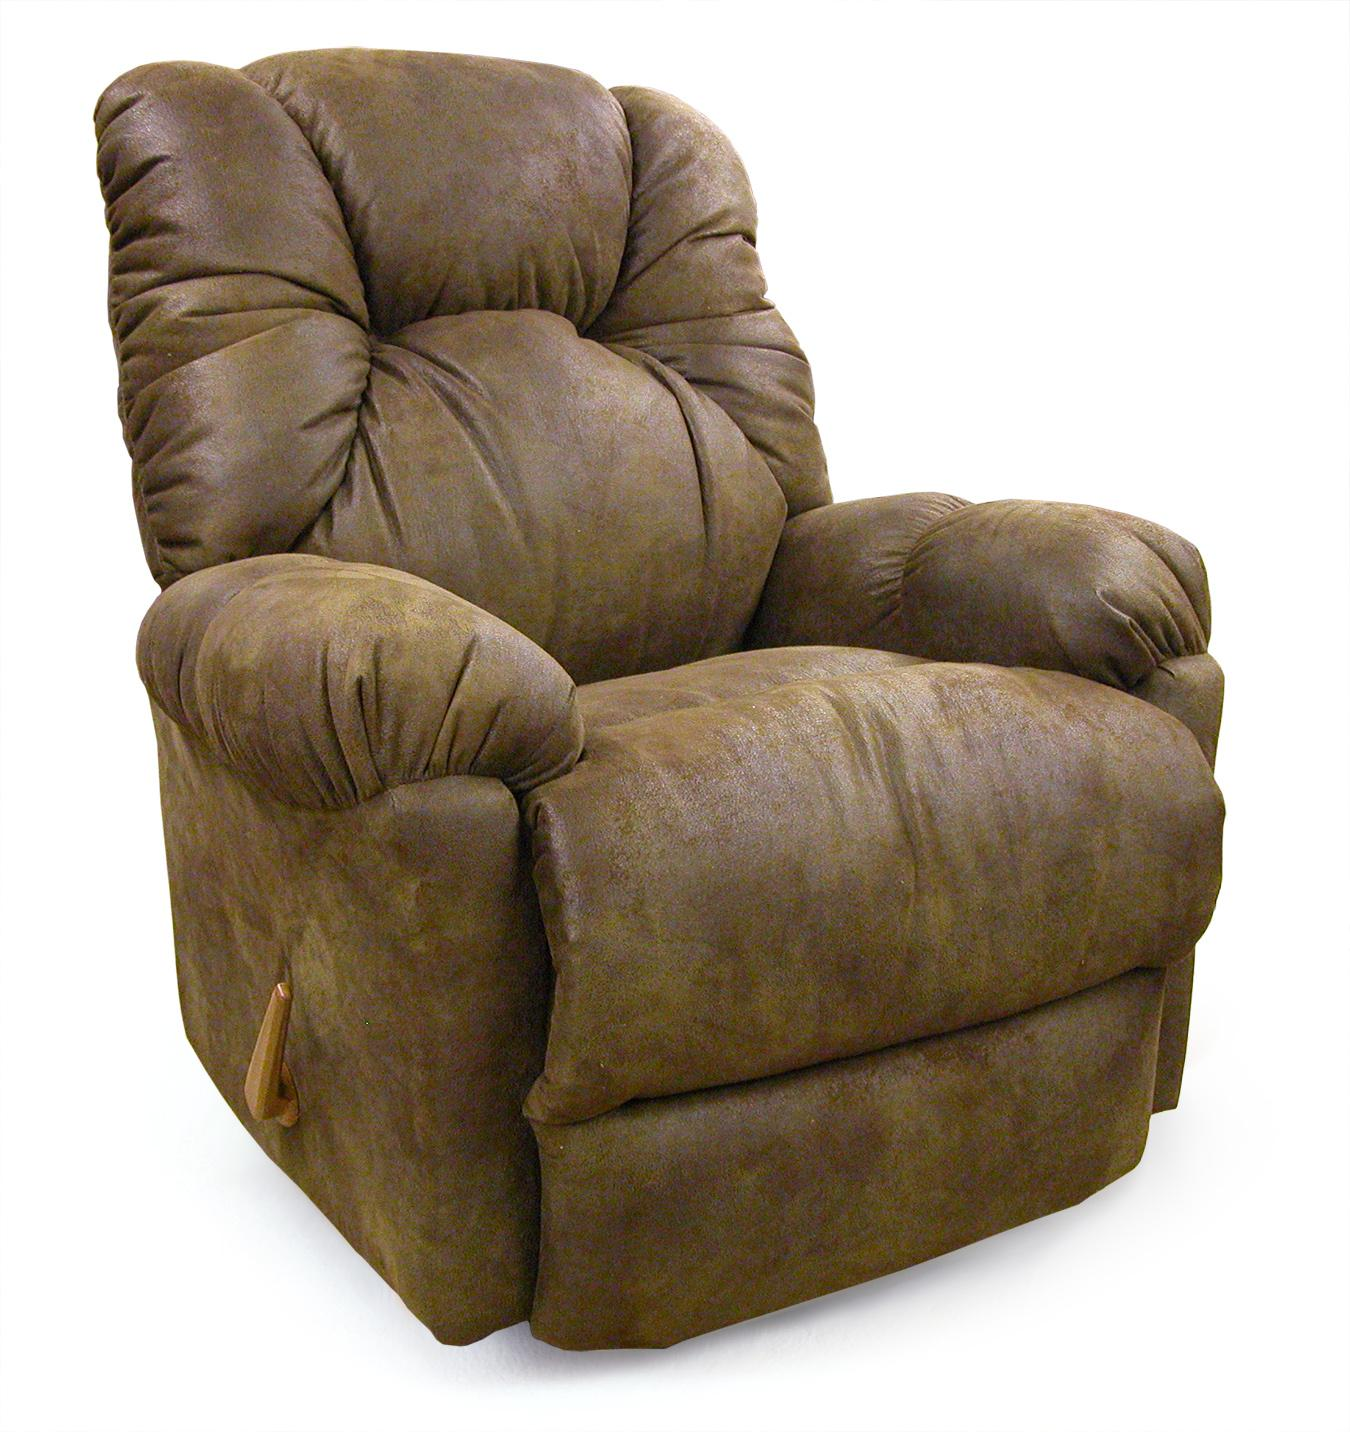 Best Home Furnishings Recliners - Medium Romulus Power Wallhugger Recliner - Item Number: 9MP54